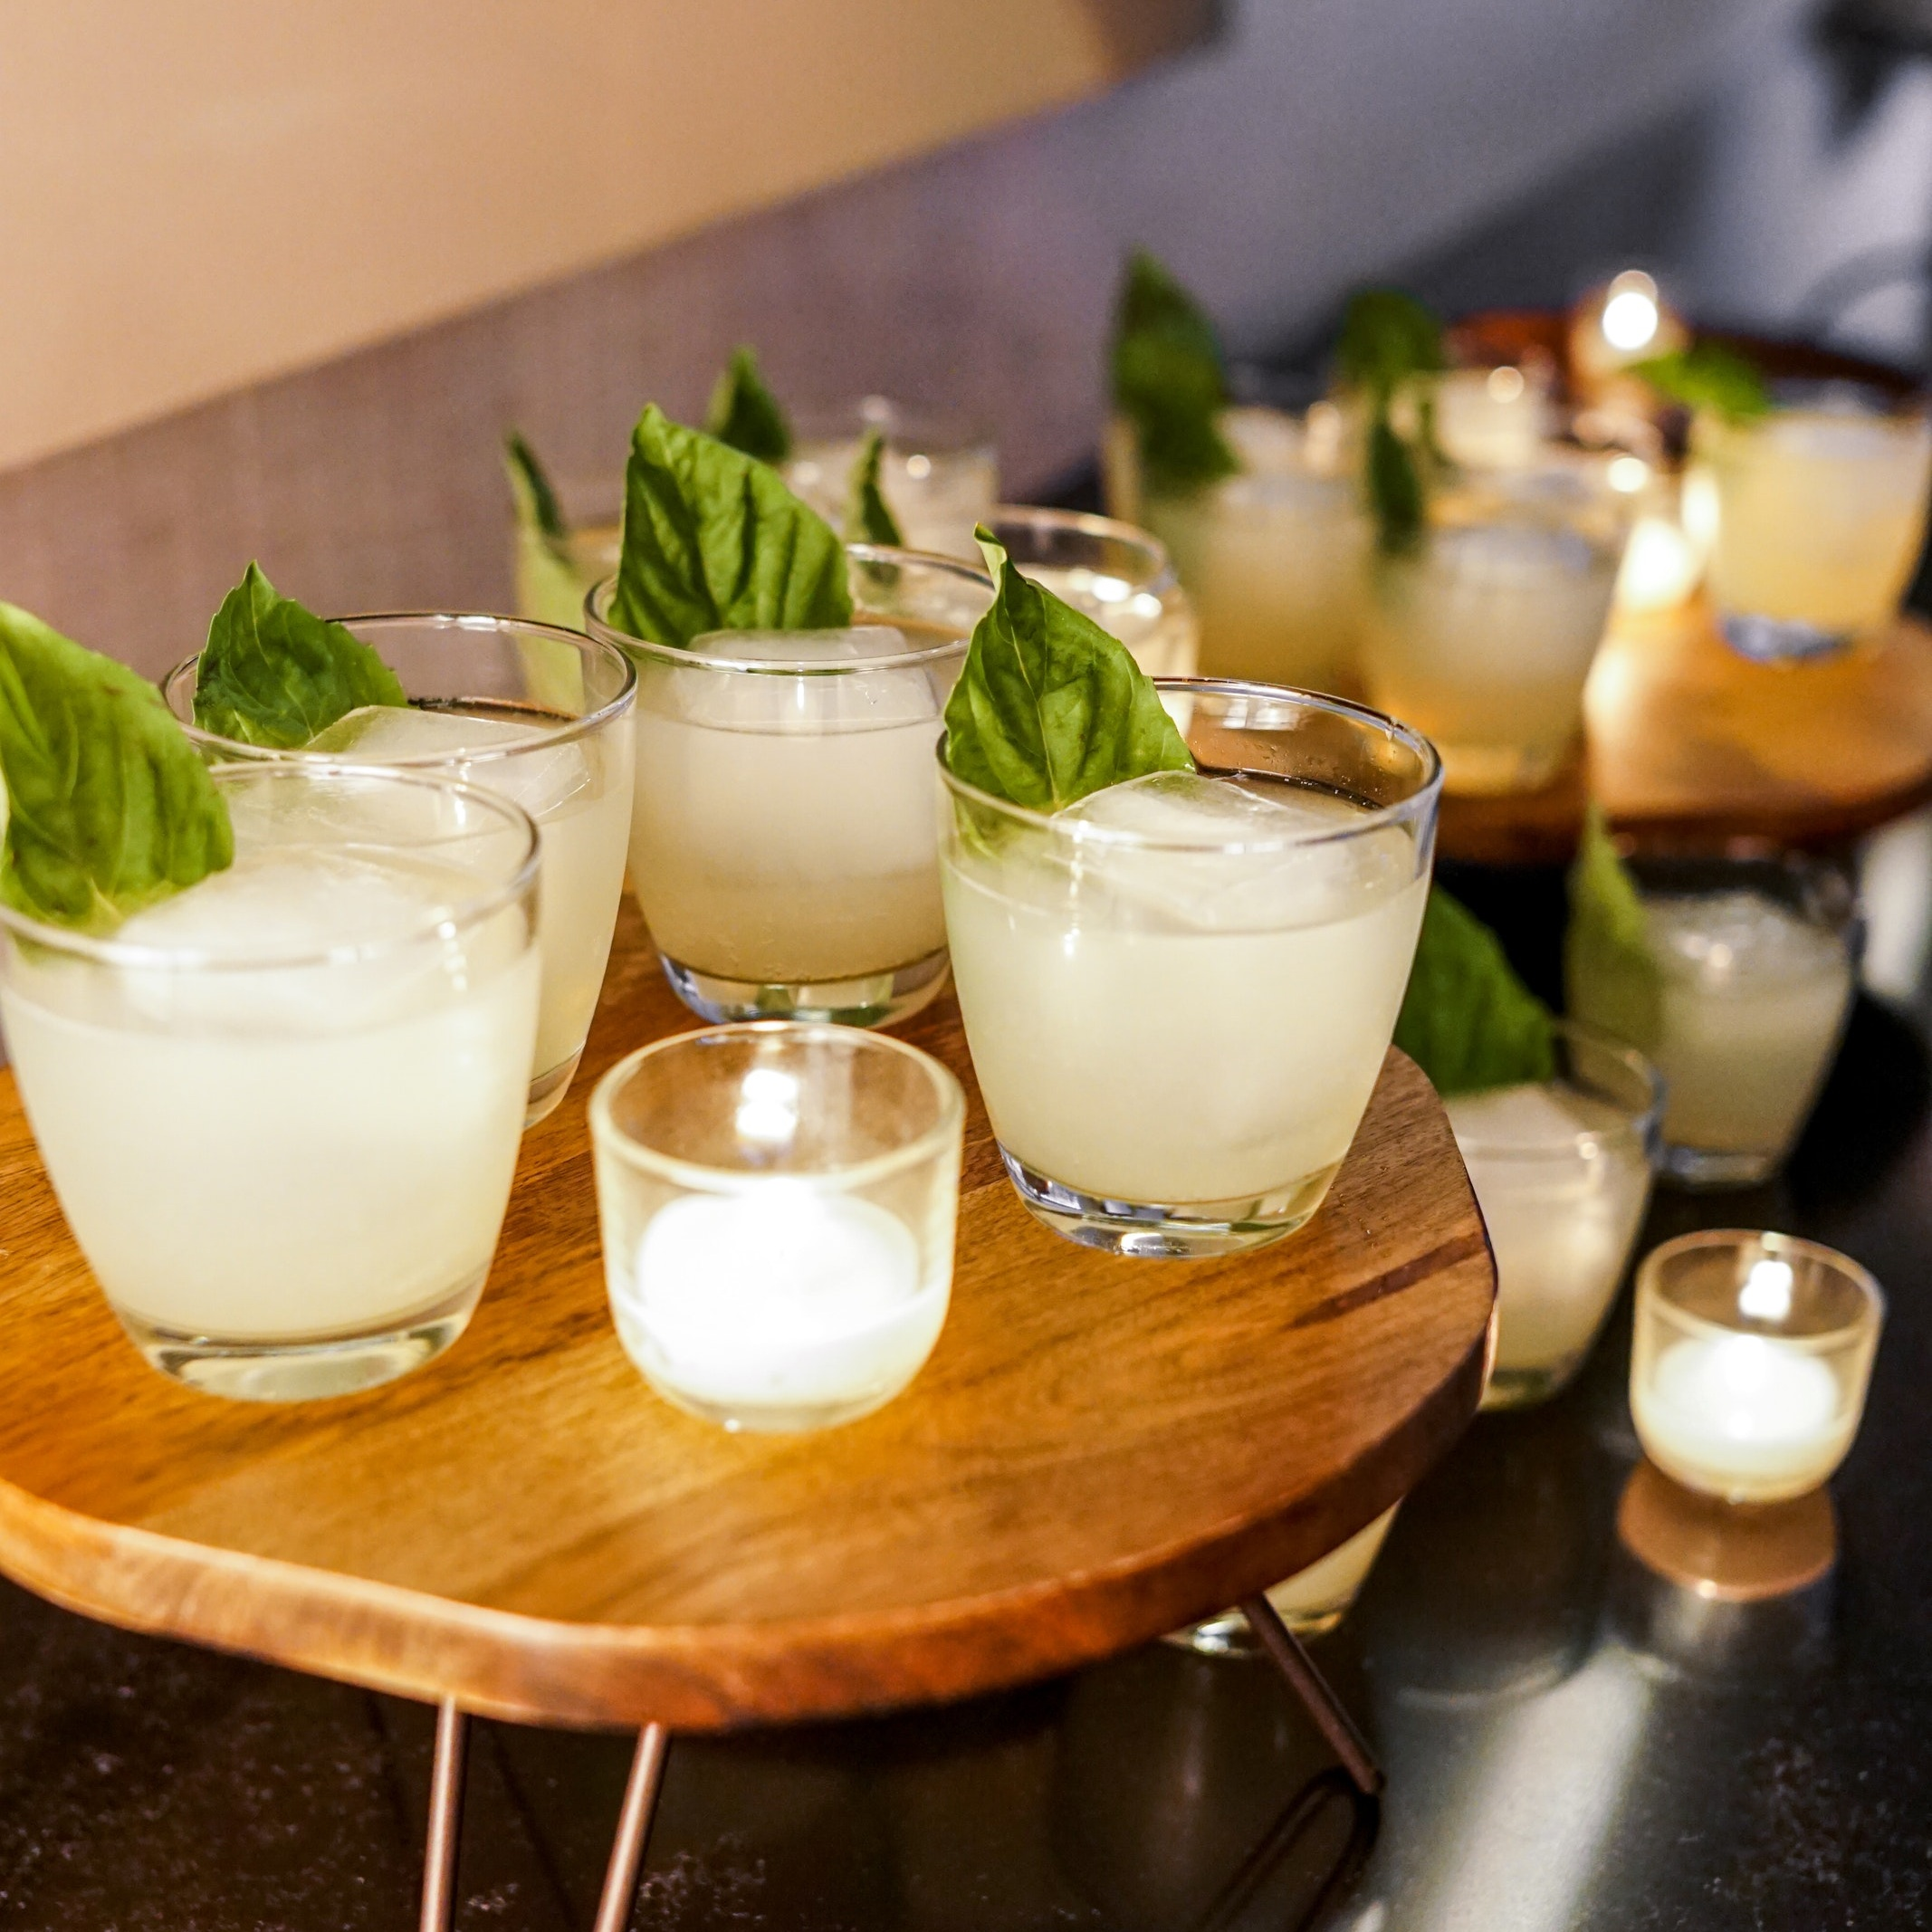 diverso-events-catering-cocktail-bar-3.jpg